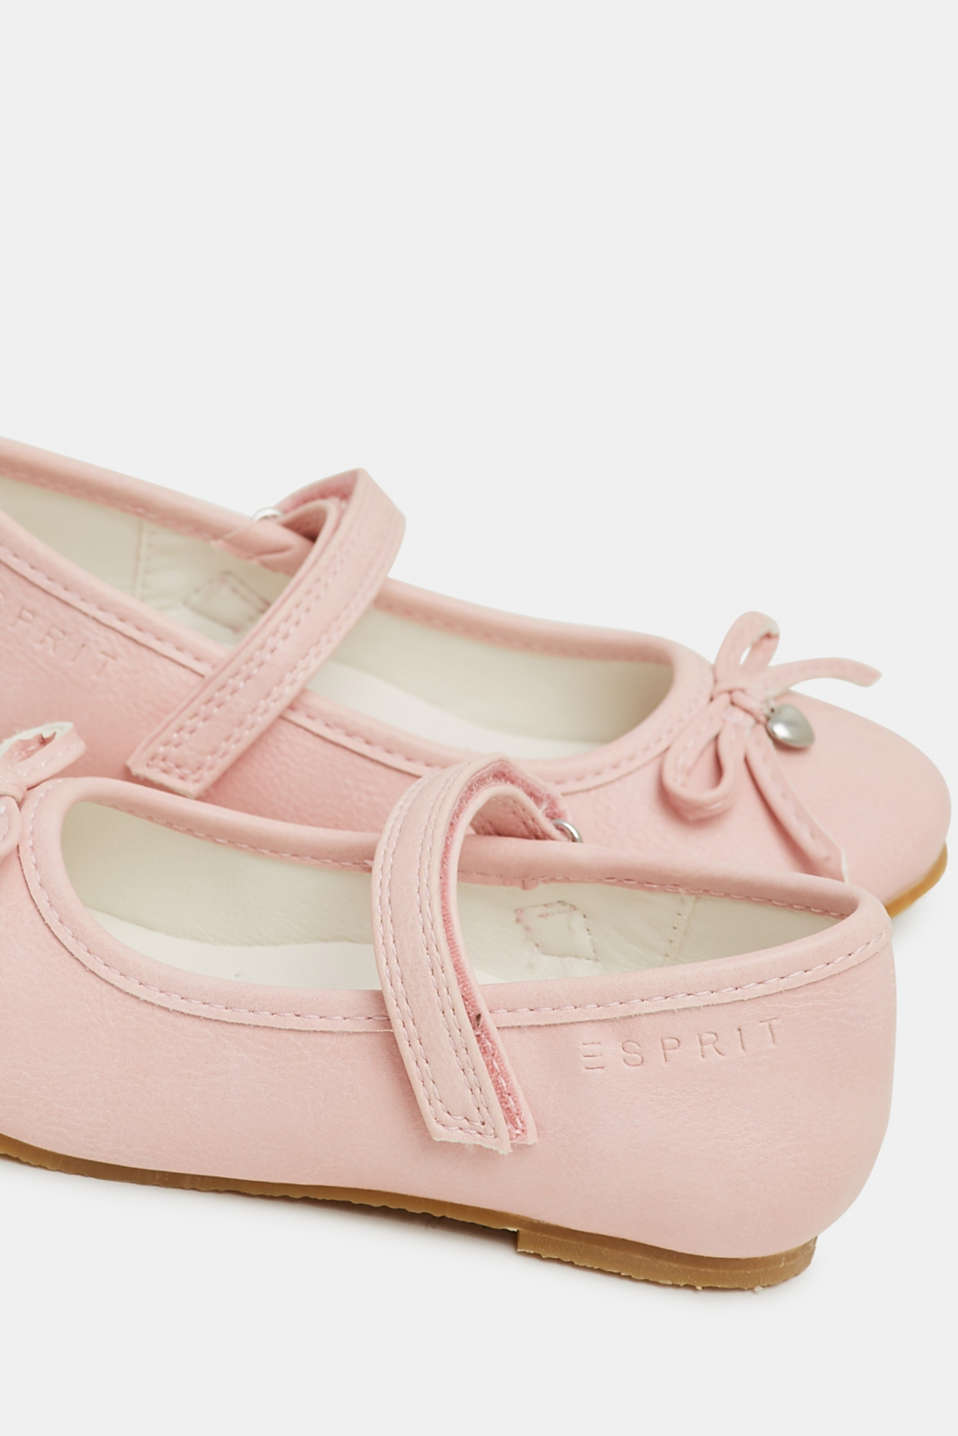 Faux leather ballerinas, LIGHT PINK, detail image number 3